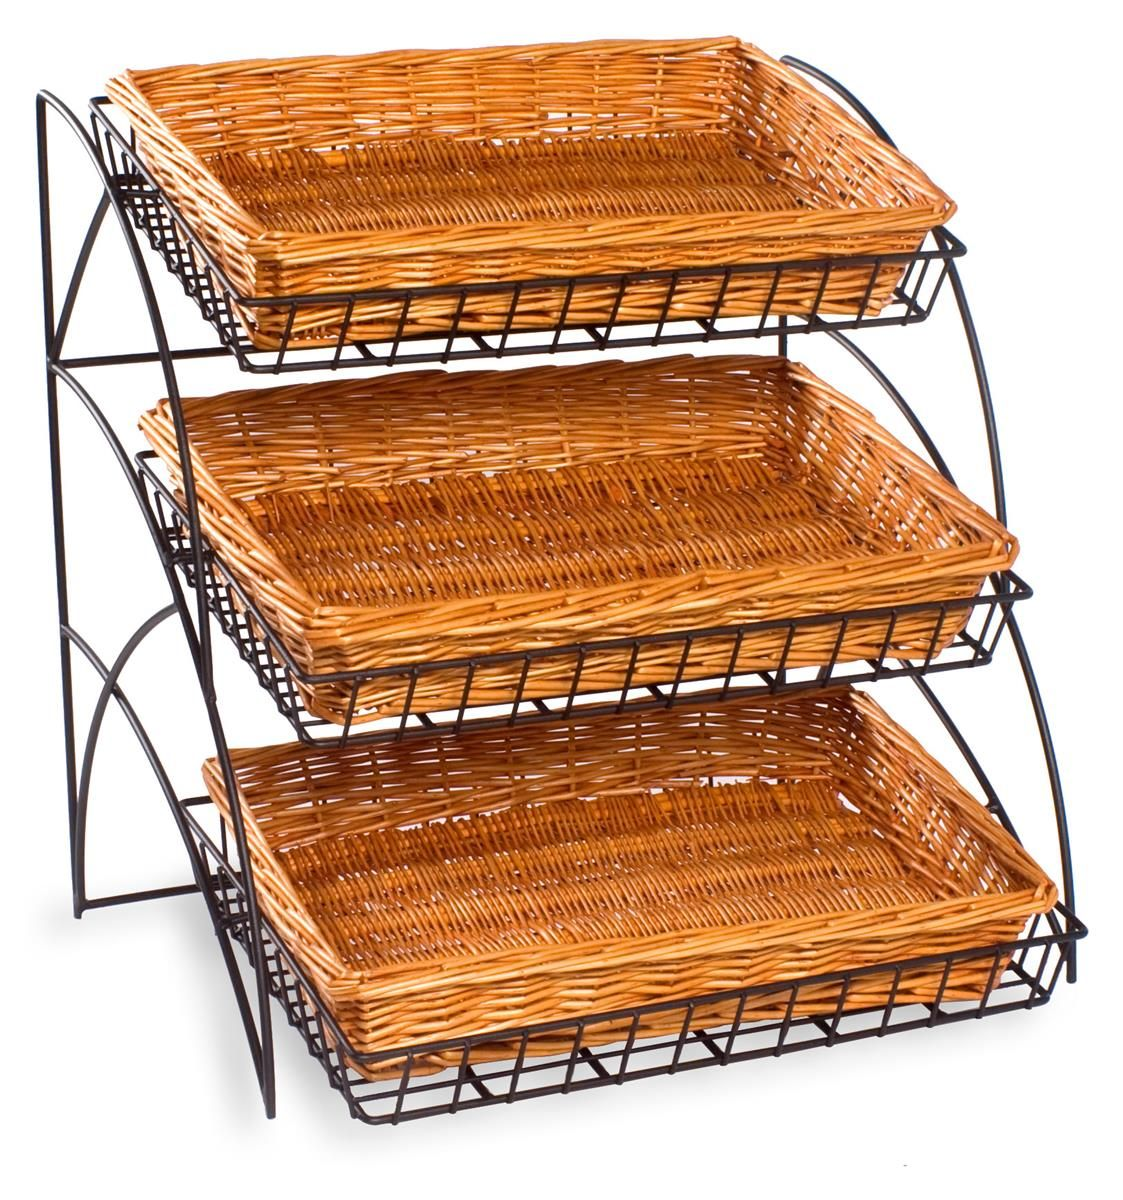 21 Tiered Wire Rack Countertop 3 Shelves With Wicker Baskets